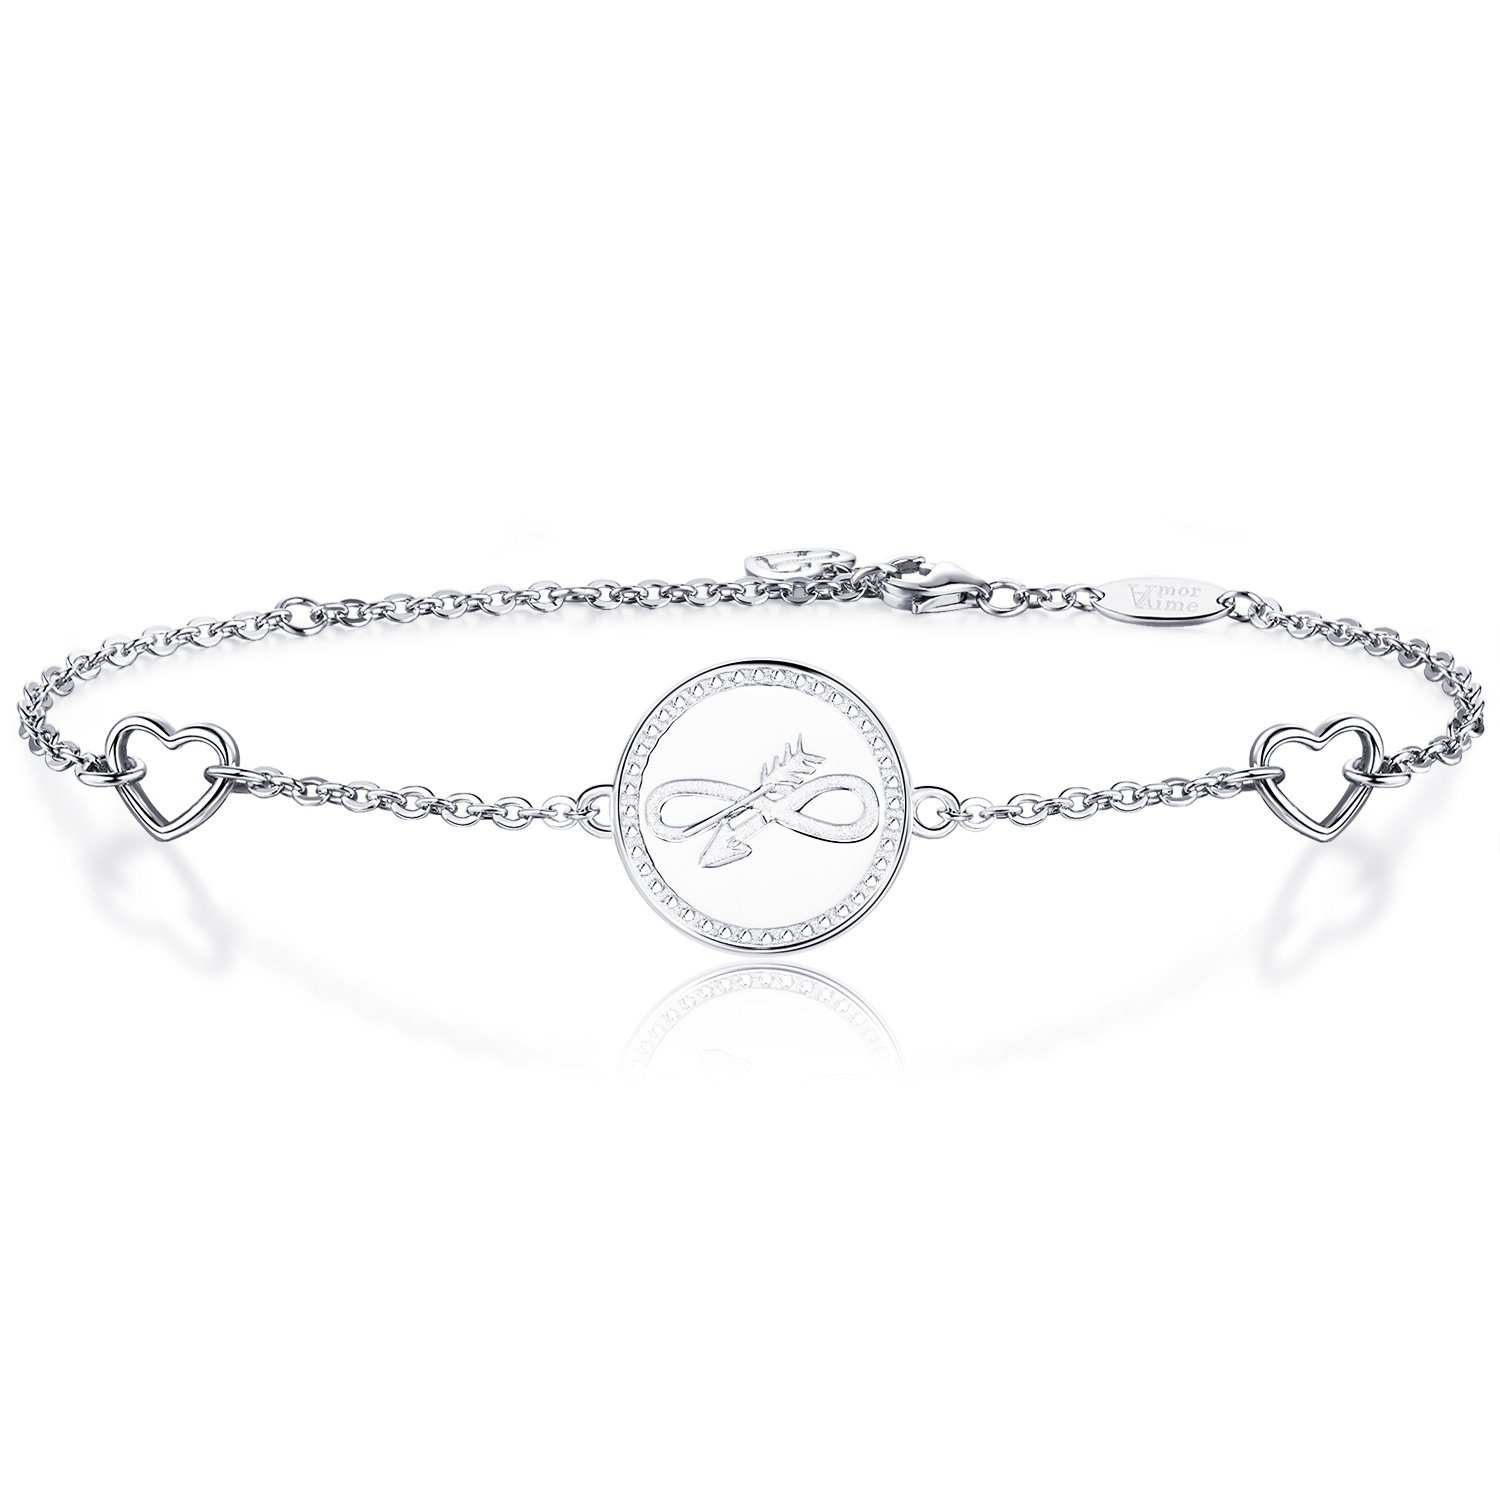 AmorAime 925 Sterling Silver Arrow Symbol Heart Charm Disc Bracelet White Gold Plated Adjustable Jewelry Gifts for Women Girls